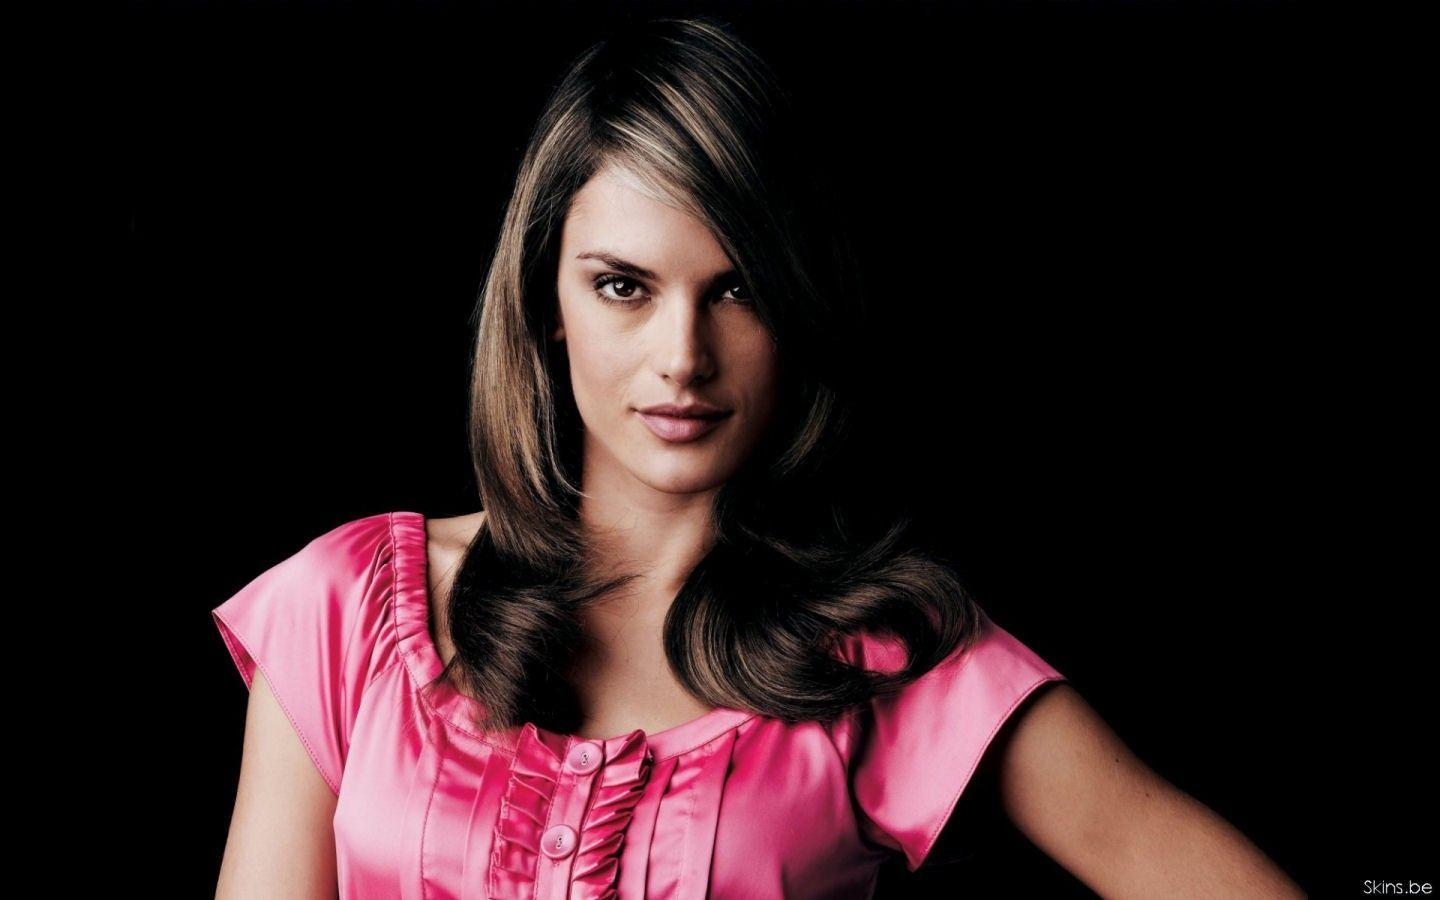 alessandra ambrosio wallpapers - photo #30